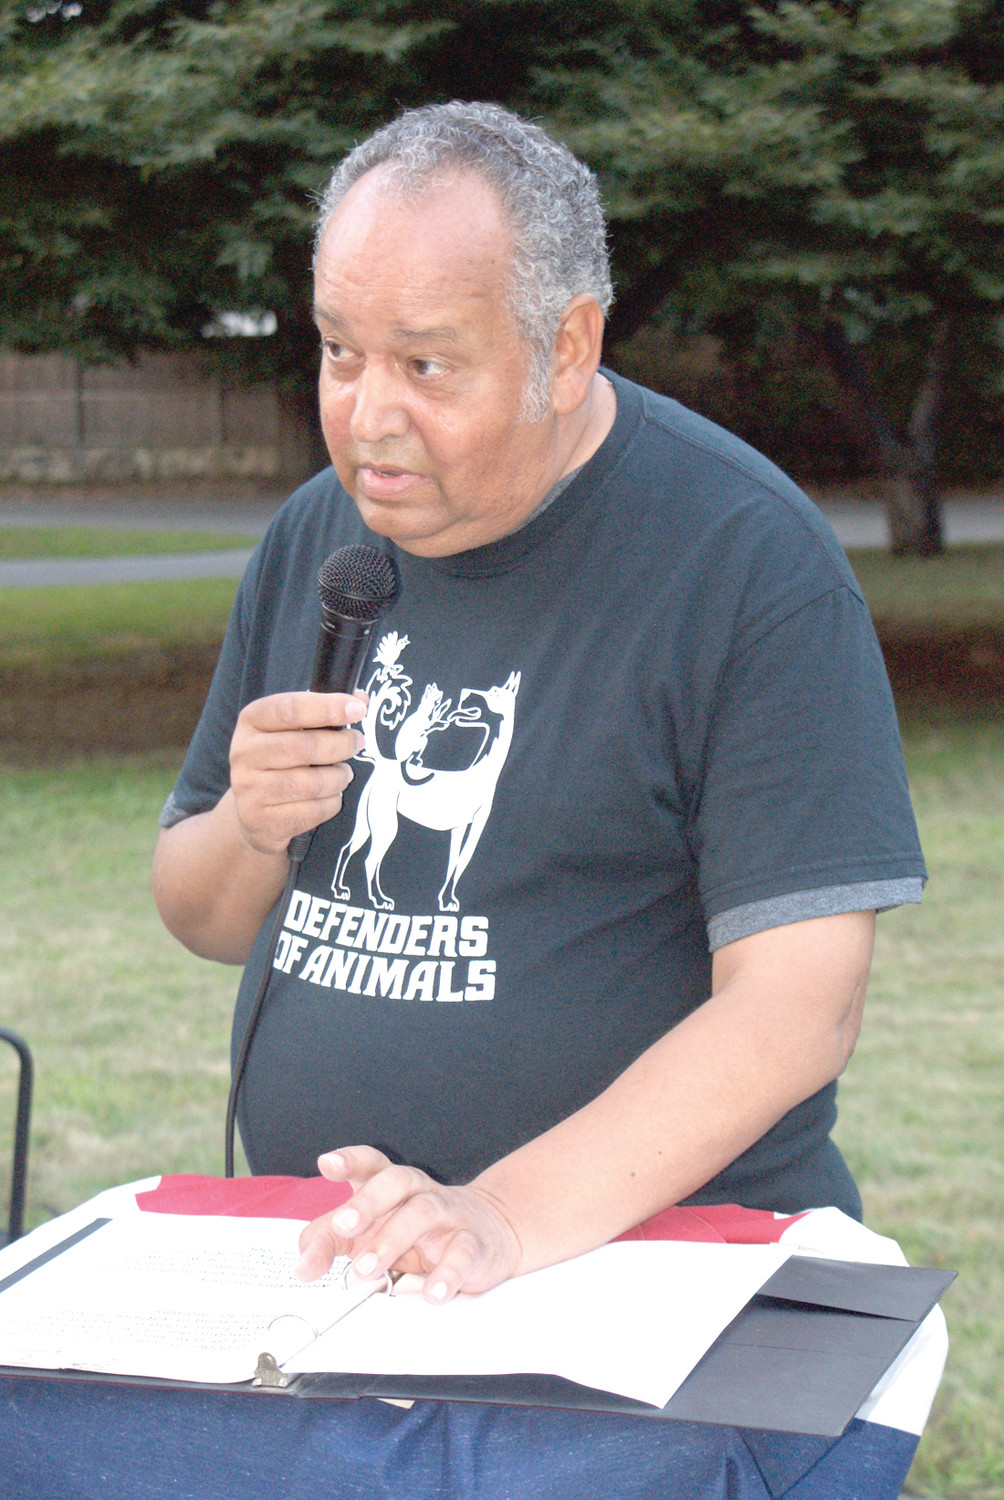 ON BEHALF OF THE ANIMALS: Dennis Tabella, founder and director of Defenders of Animals, has announced that this year's 22nd annual Homeless Animals Day/Candlelight Vigil/Awards ceremony will be held at the Governor Sprague Mansion in Cranston on Saturday, August 18, from 7 to 9 p.m.